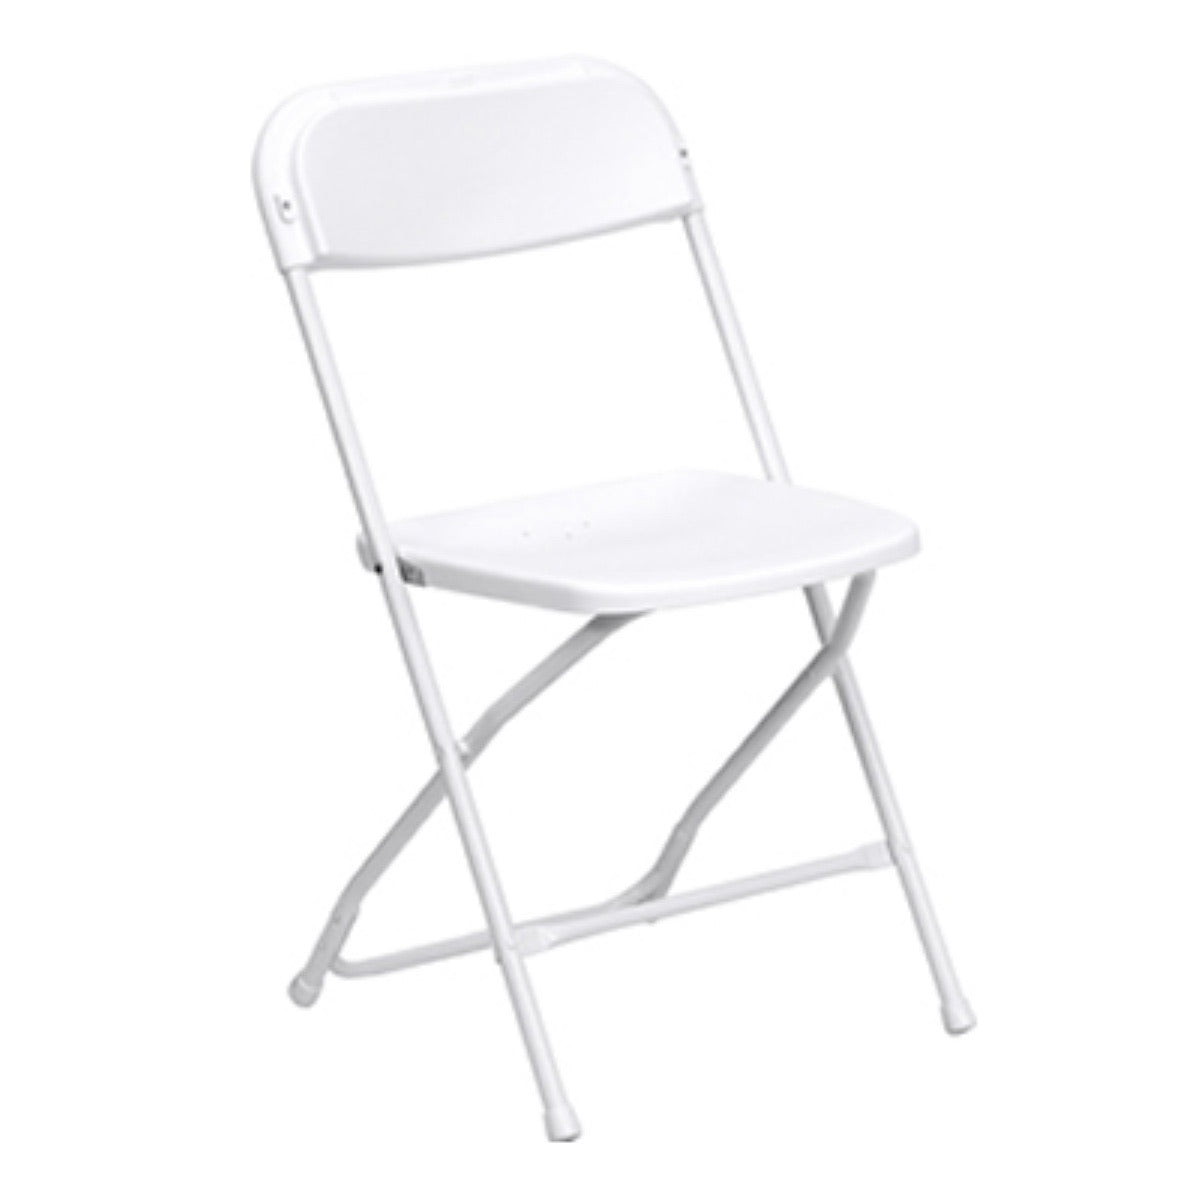 White Plastic Folding Adult Chair